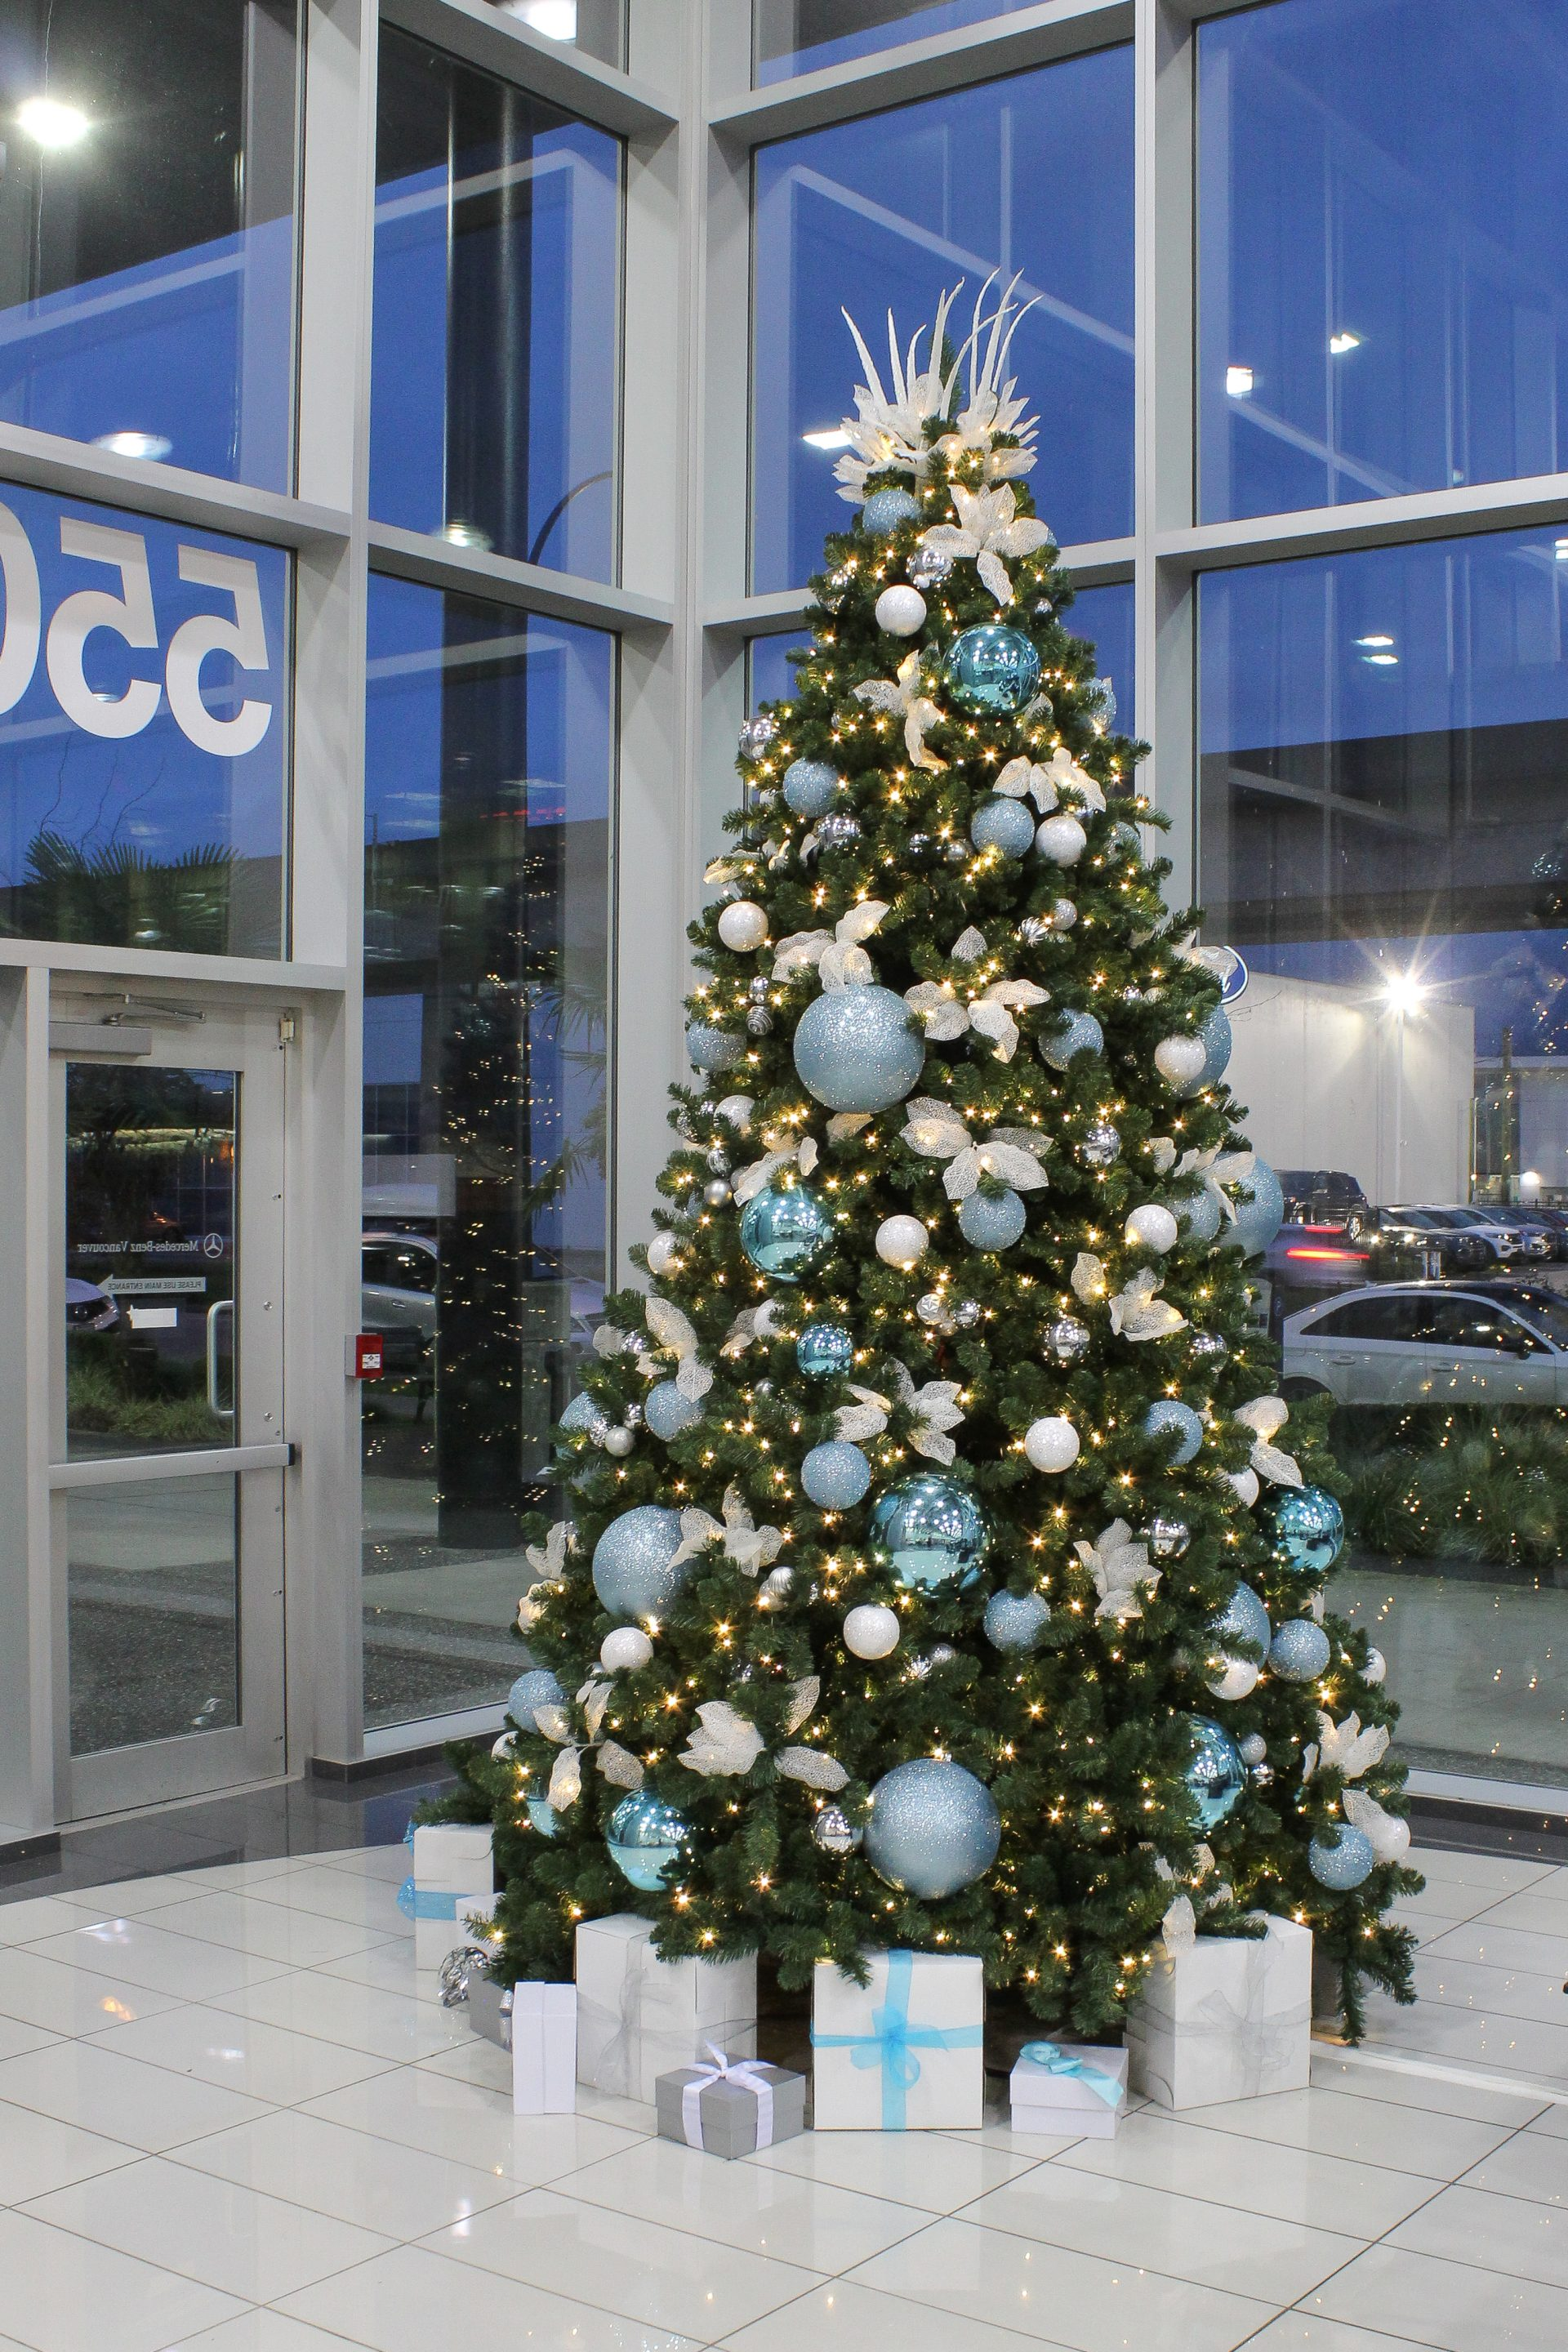 12 foot tall christmas tree decorated in white, silver and icy blue decor, present base, in car dealership